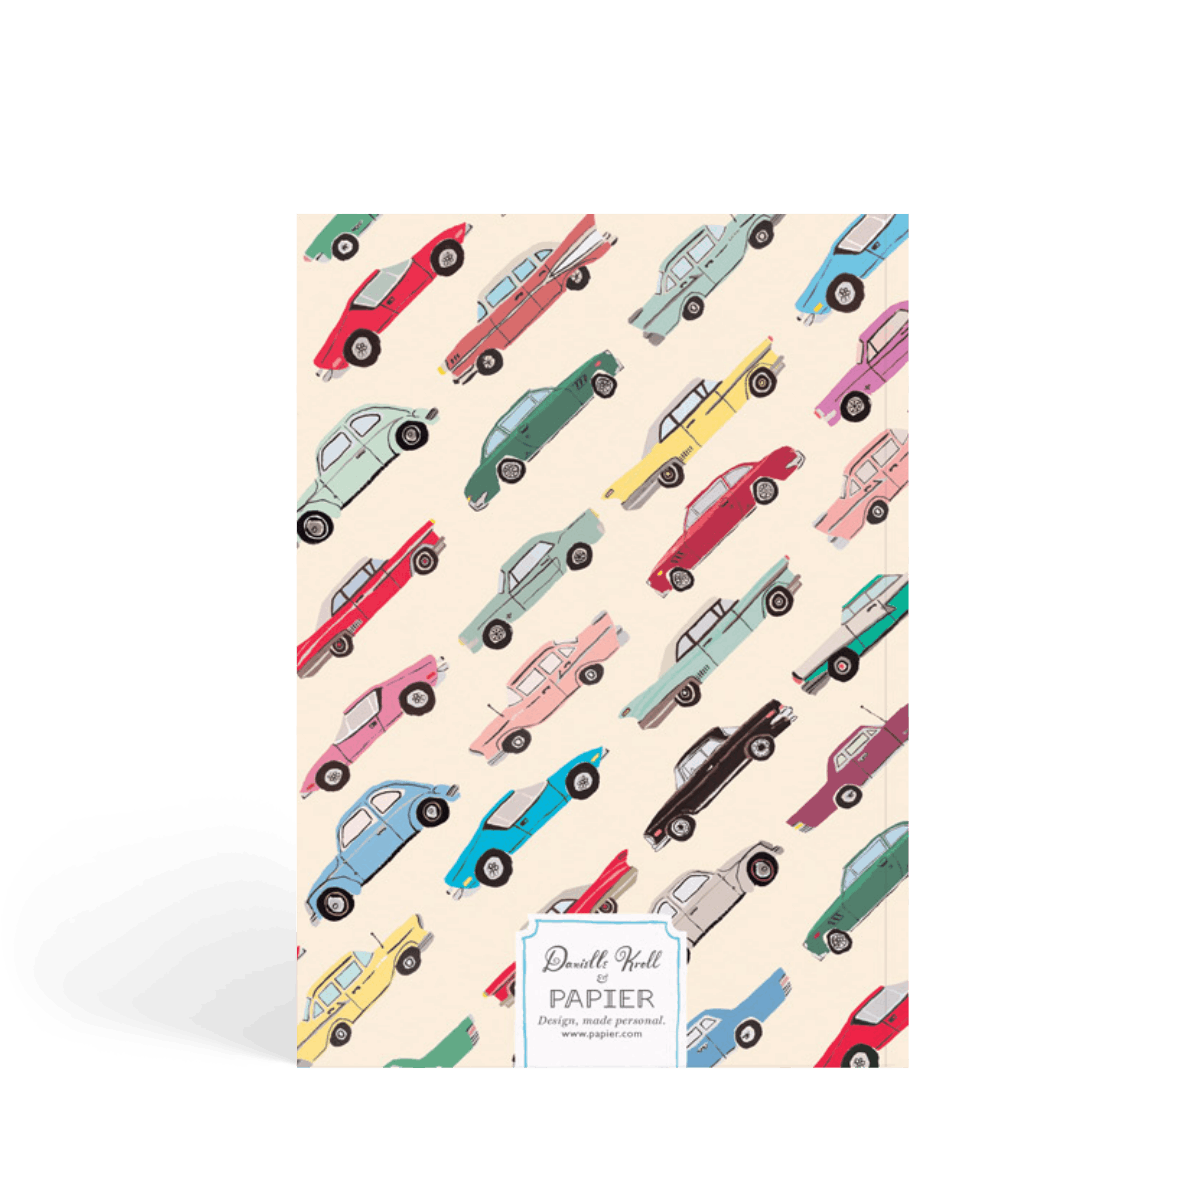 Https%3a%2f%2fwww.papier.com%2fproduct image%2f28295%2f5%2fvintage cars 7101 arriere 1505900548.png?ixlib=rb 1.1